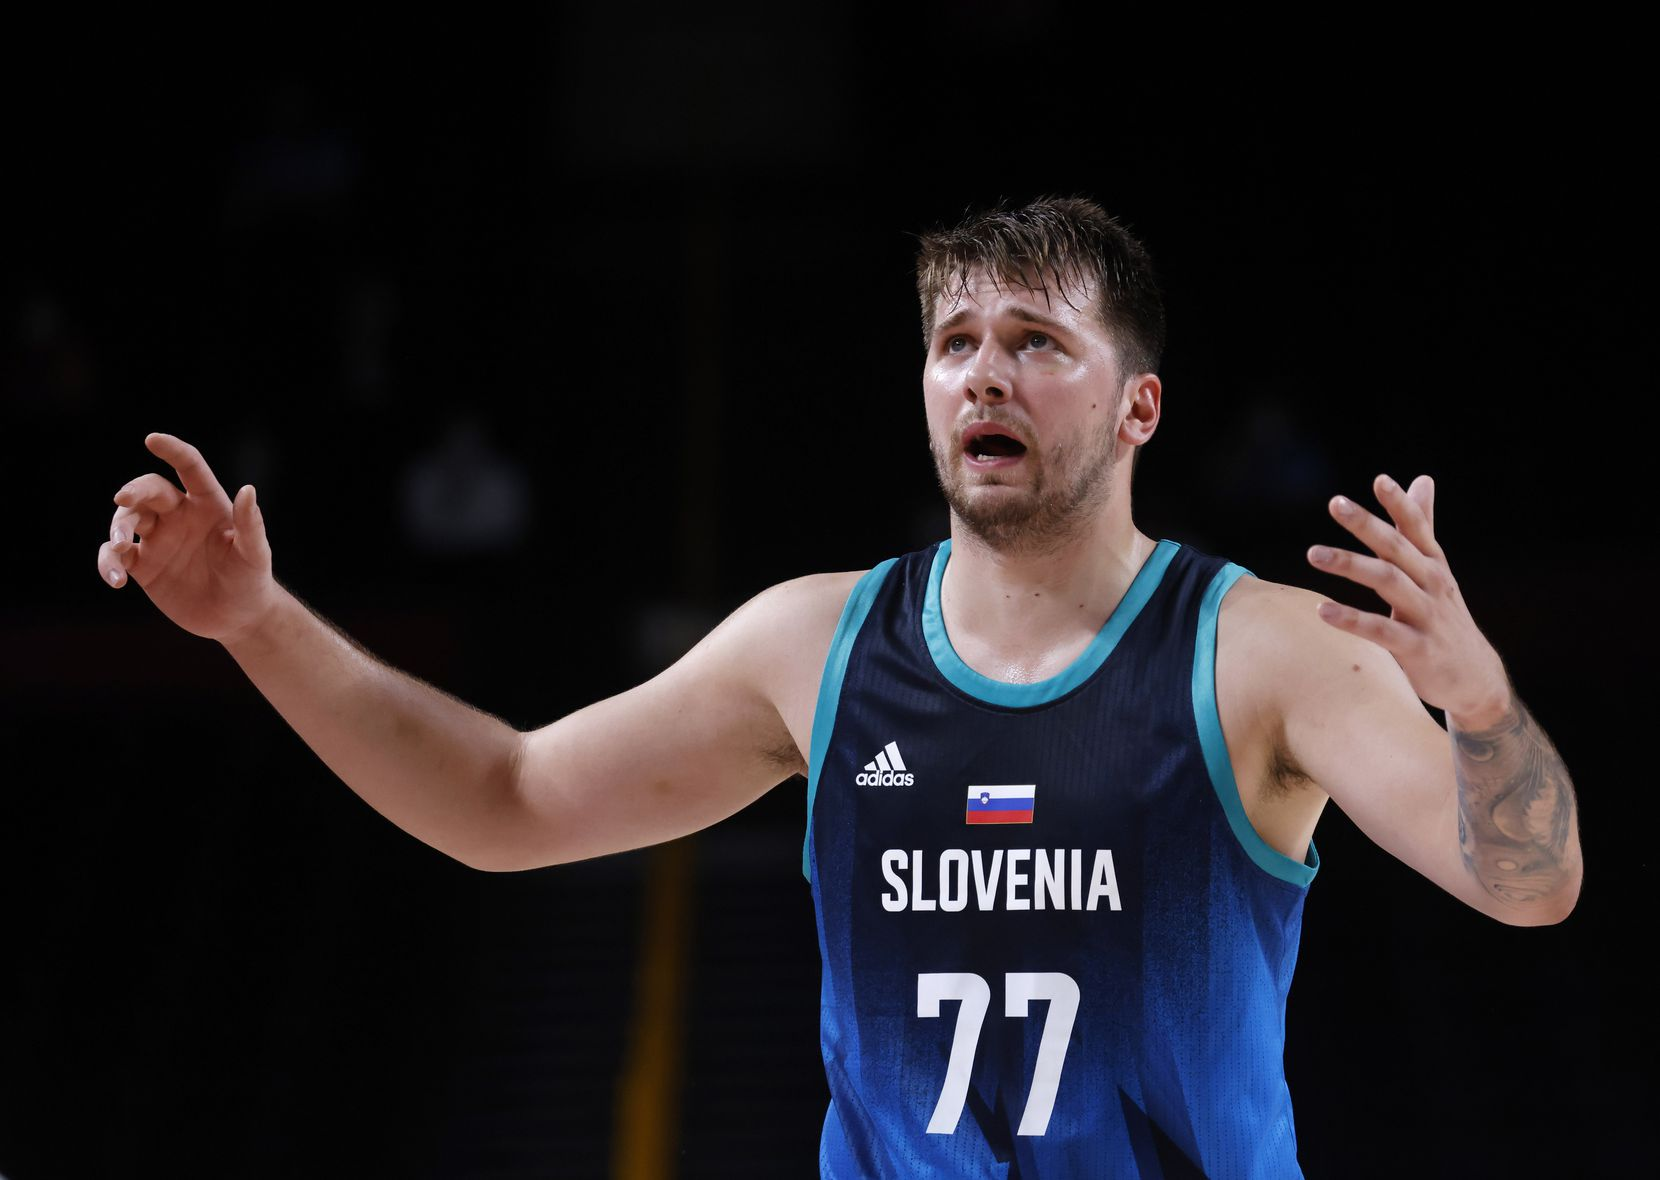 Slovenia's Luka Doncic reacts to not getting a call on the last play in a game against France during the second half of a men's basketball semifinal at the postponed 2020 Tokyo Olympics at Saitama Super Arena, on Thursday, August 5, 2021, in Saitama, Japan. France defeated Slovenia 90-89. Slovenia will play in the bronze medal game. (Vernon Bryant/The Dallas Morning News)